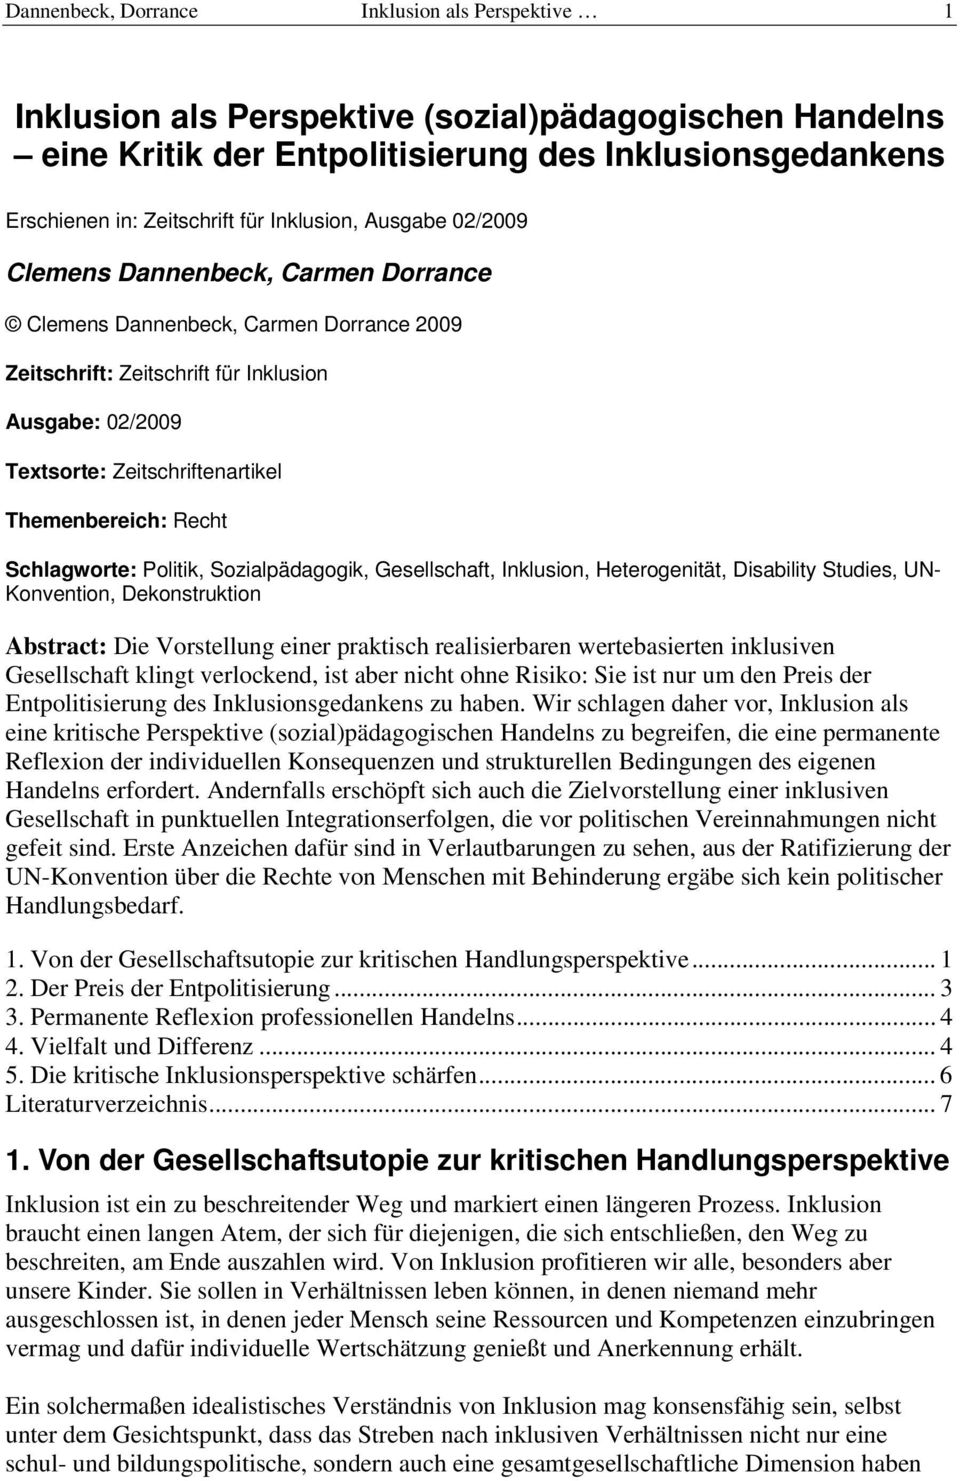 Themenbereich: Recht Schlagworte: Politik, Sozialpädagogik, Gesellschaft, Inklusion, Heterogenität, Disability Studies, UN- Konvention, Dekonstruktion Abstract: Die Vorstellung einer praktisch